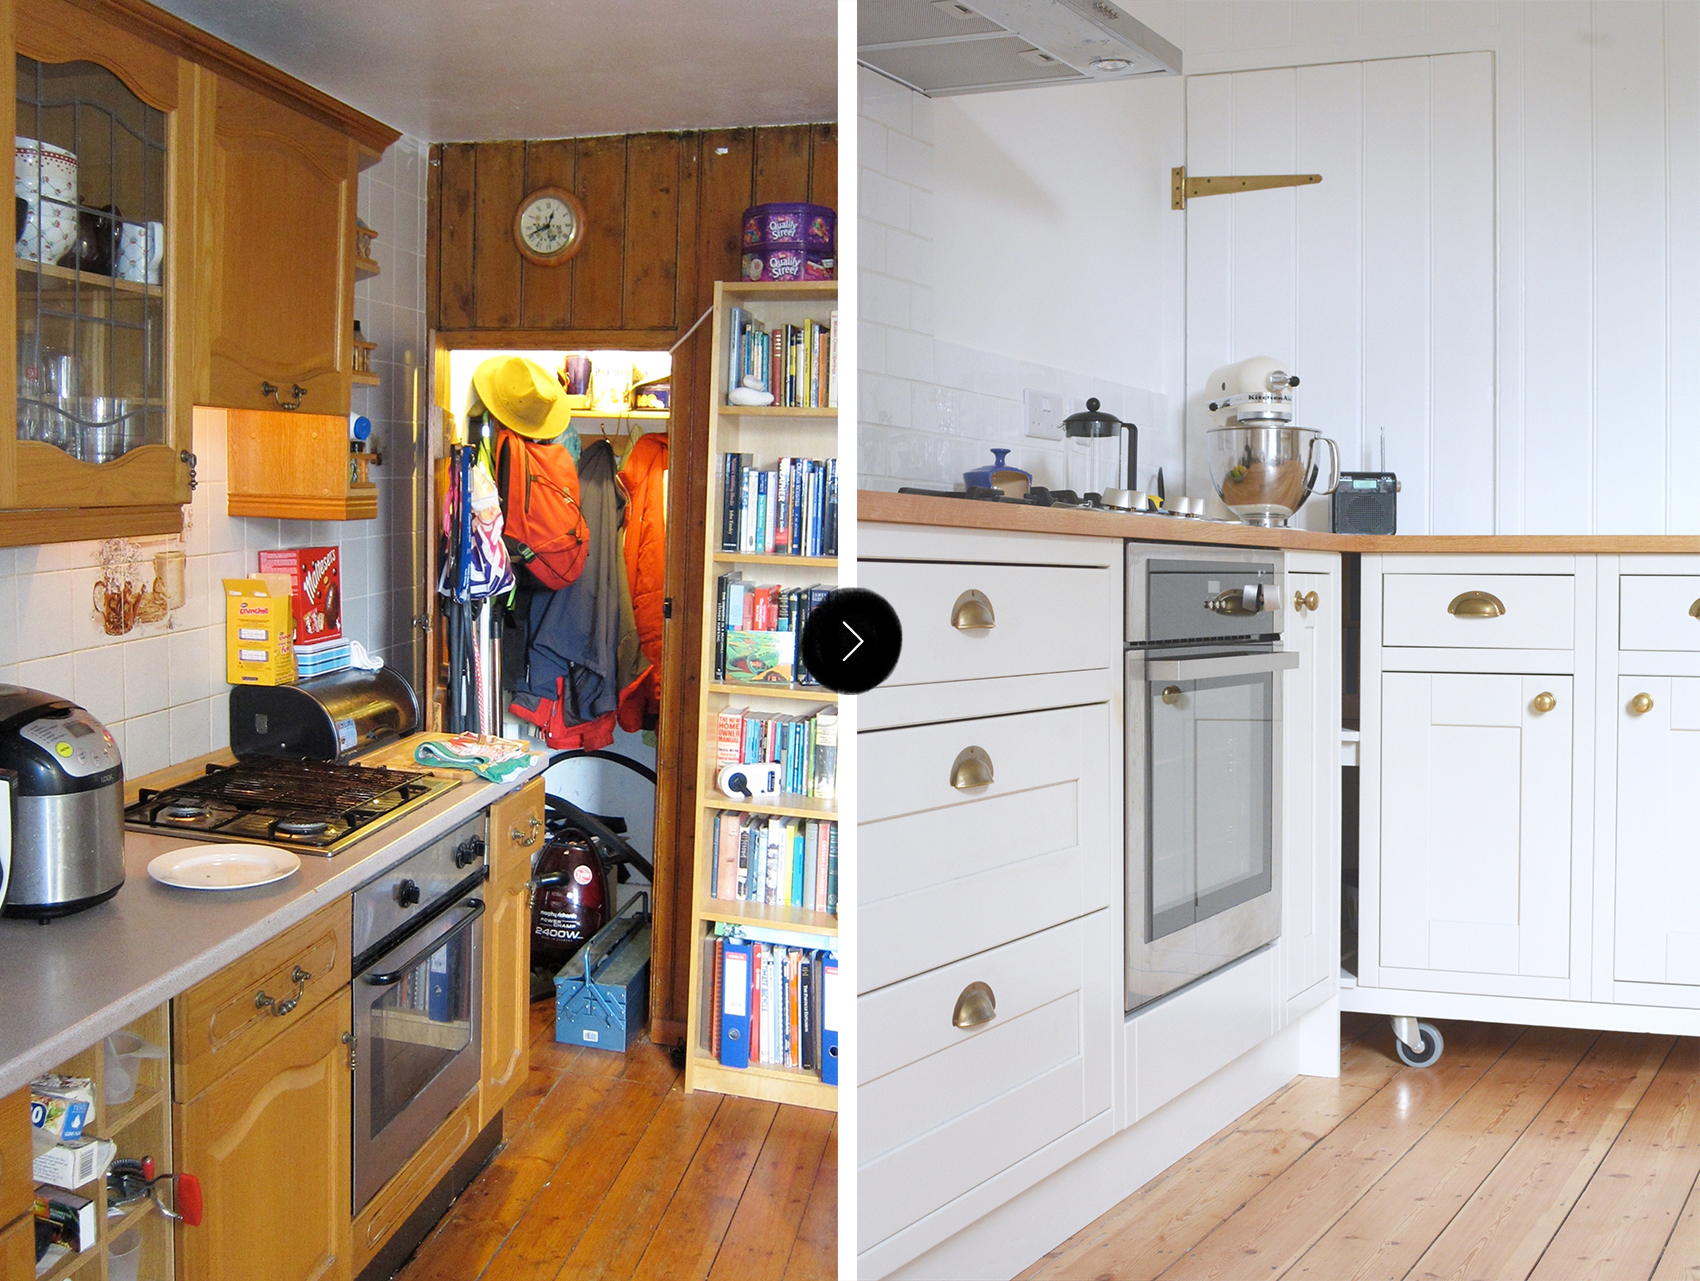 An Essex, England Before & After Focused on Restoration